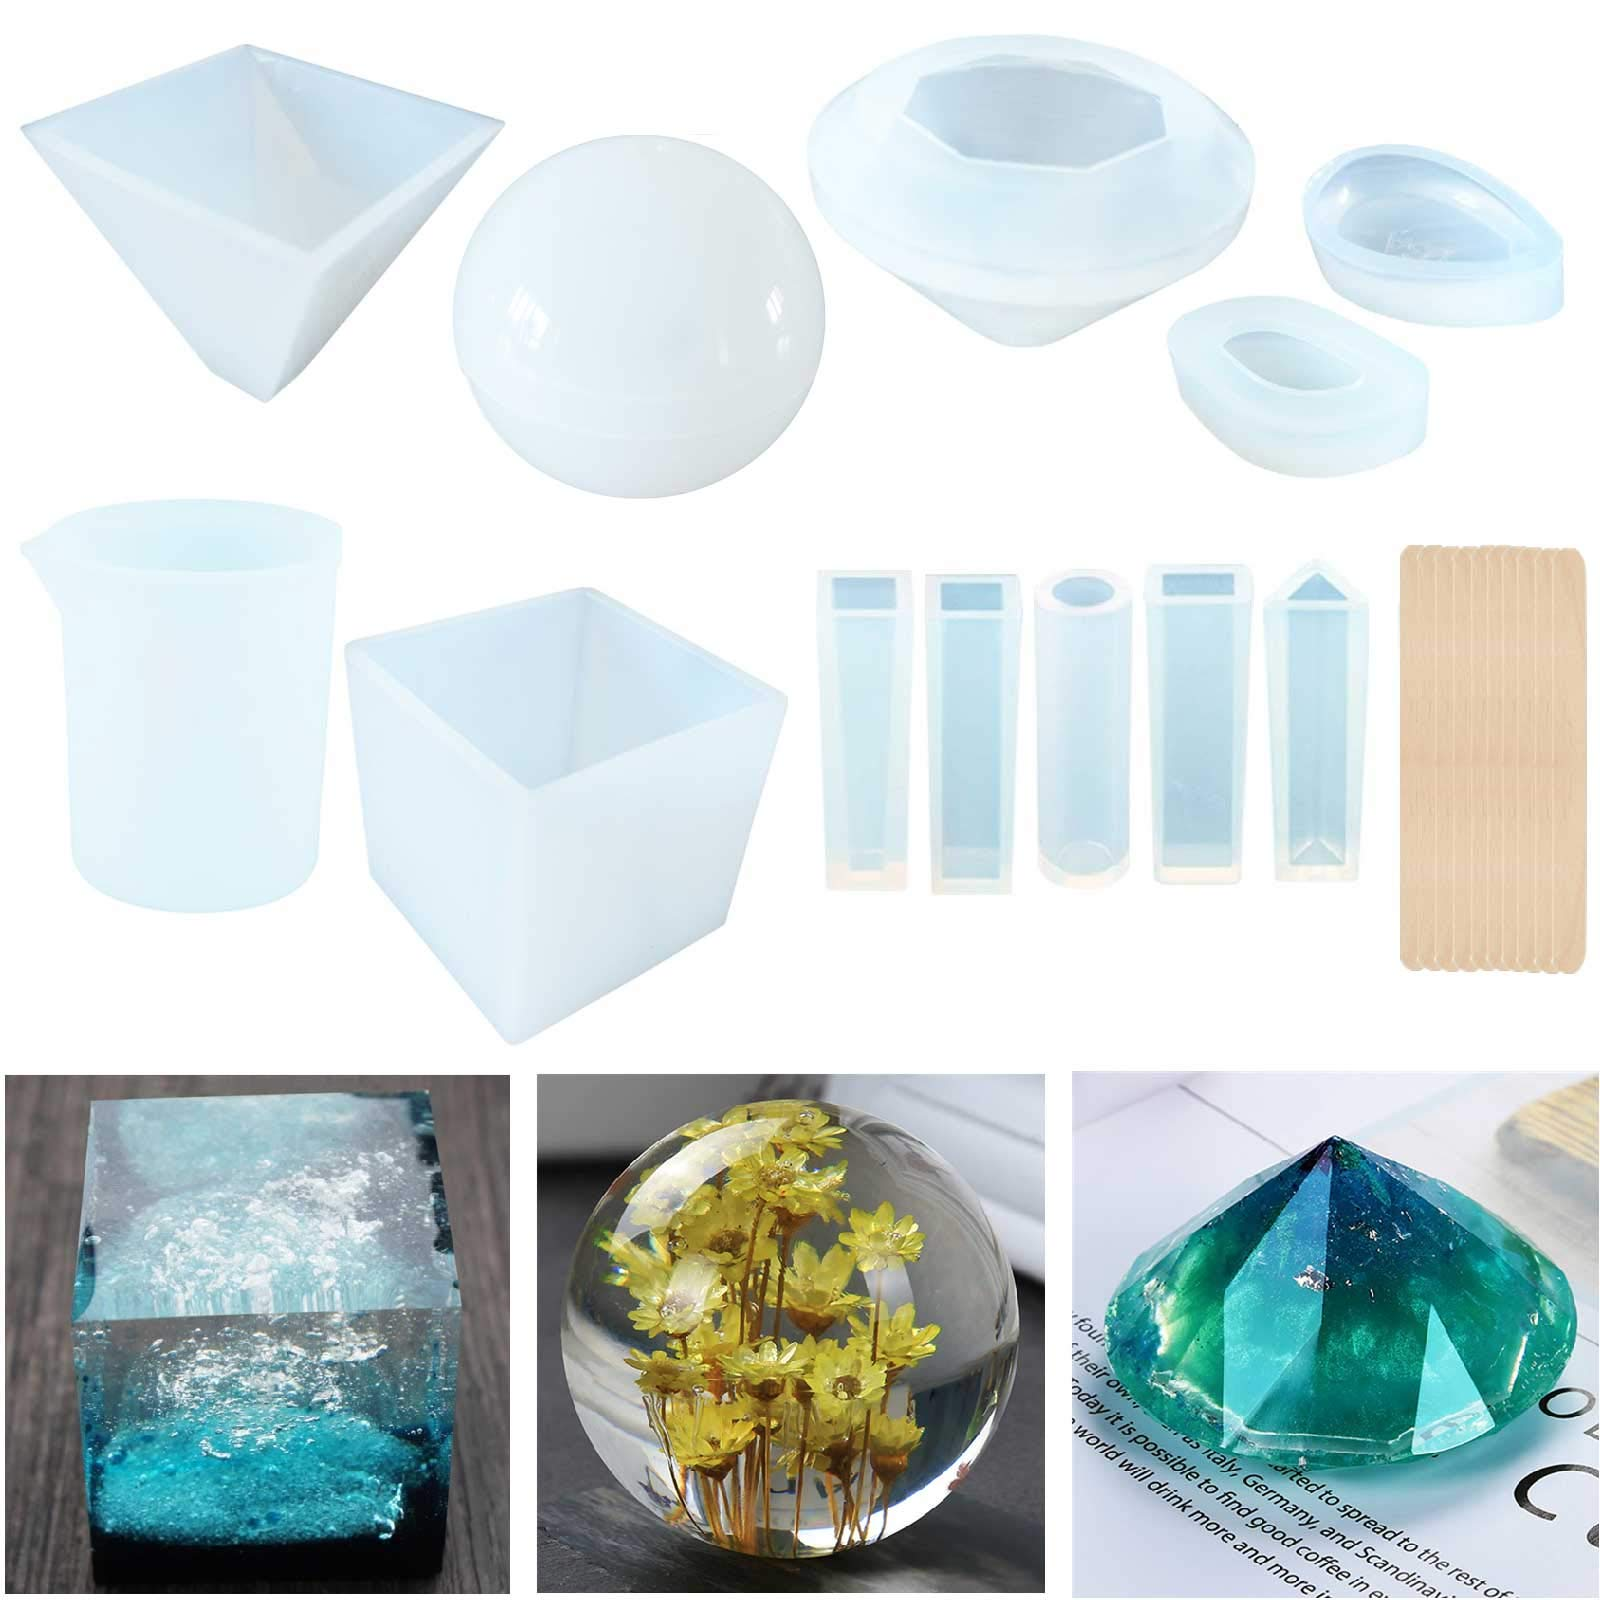 Topus 11 Packs Casting Molds for Resin,Soap,Wax etc,Including The Spherical, Cubic, Diamond, Pyramid, and Water Drop Shape Molds, with Measurement Cups& Wood Sticks. by Topus